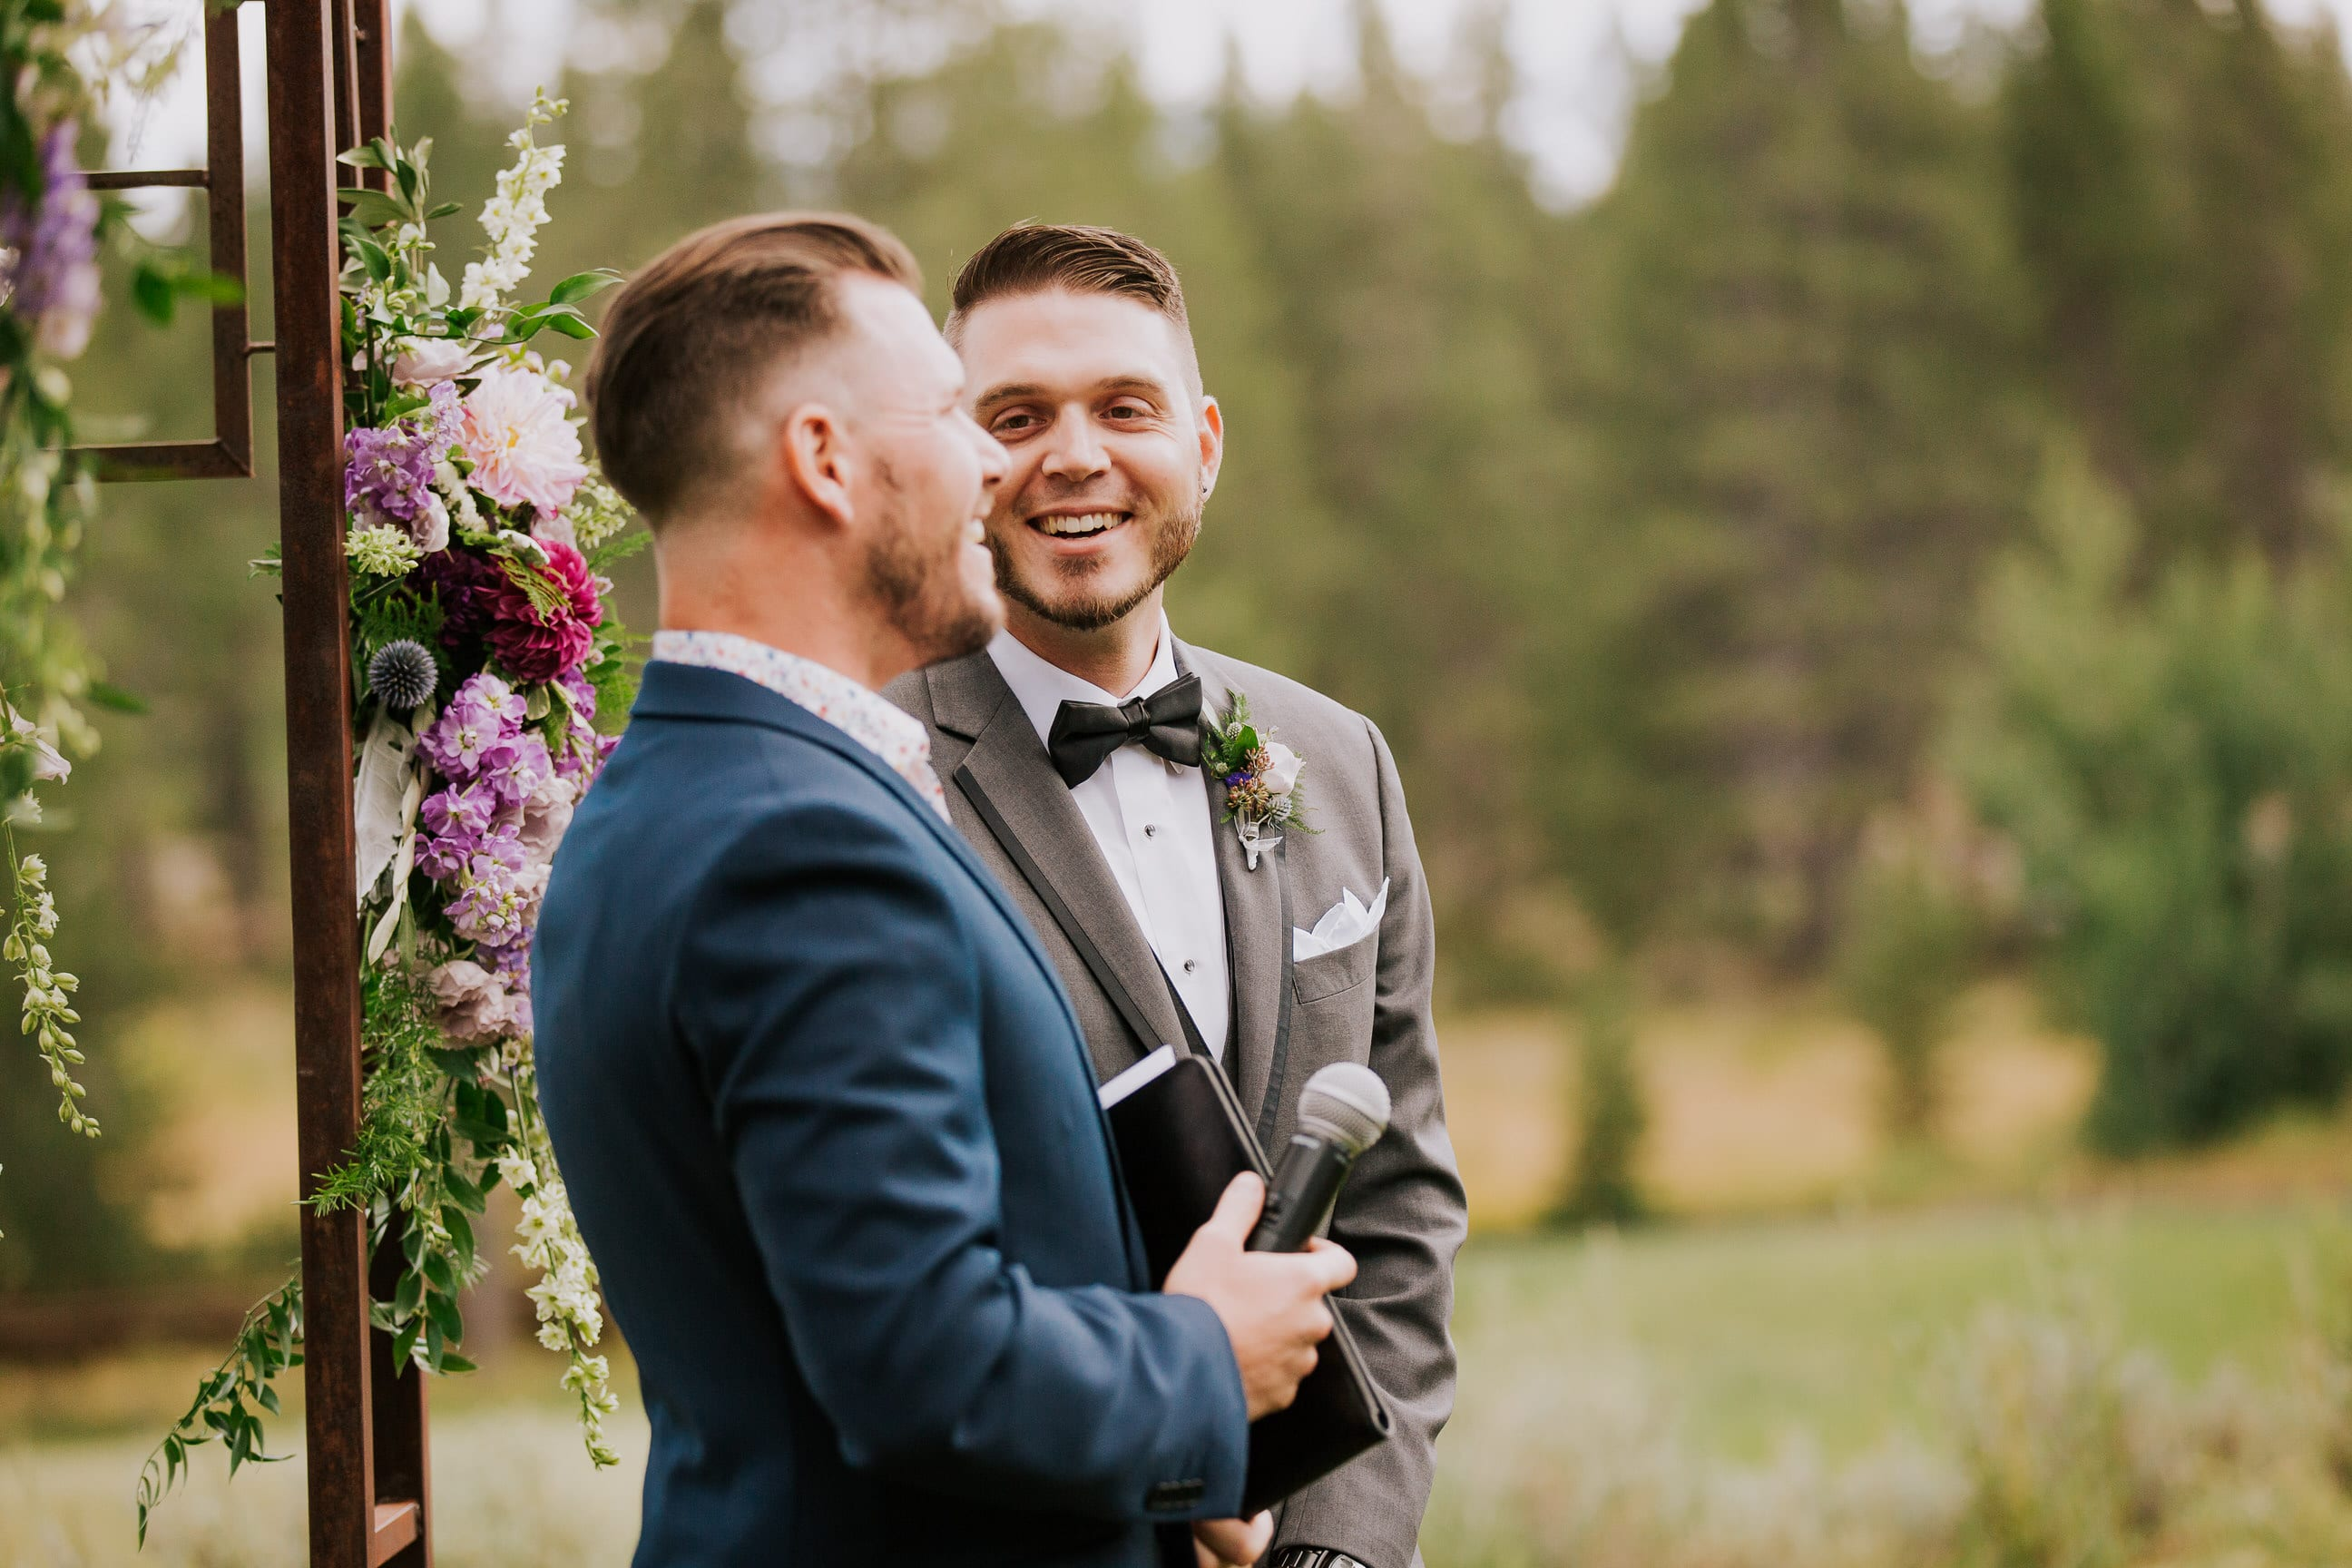 groom and efficient wait for bride to walk down aisle in wedding ceremony